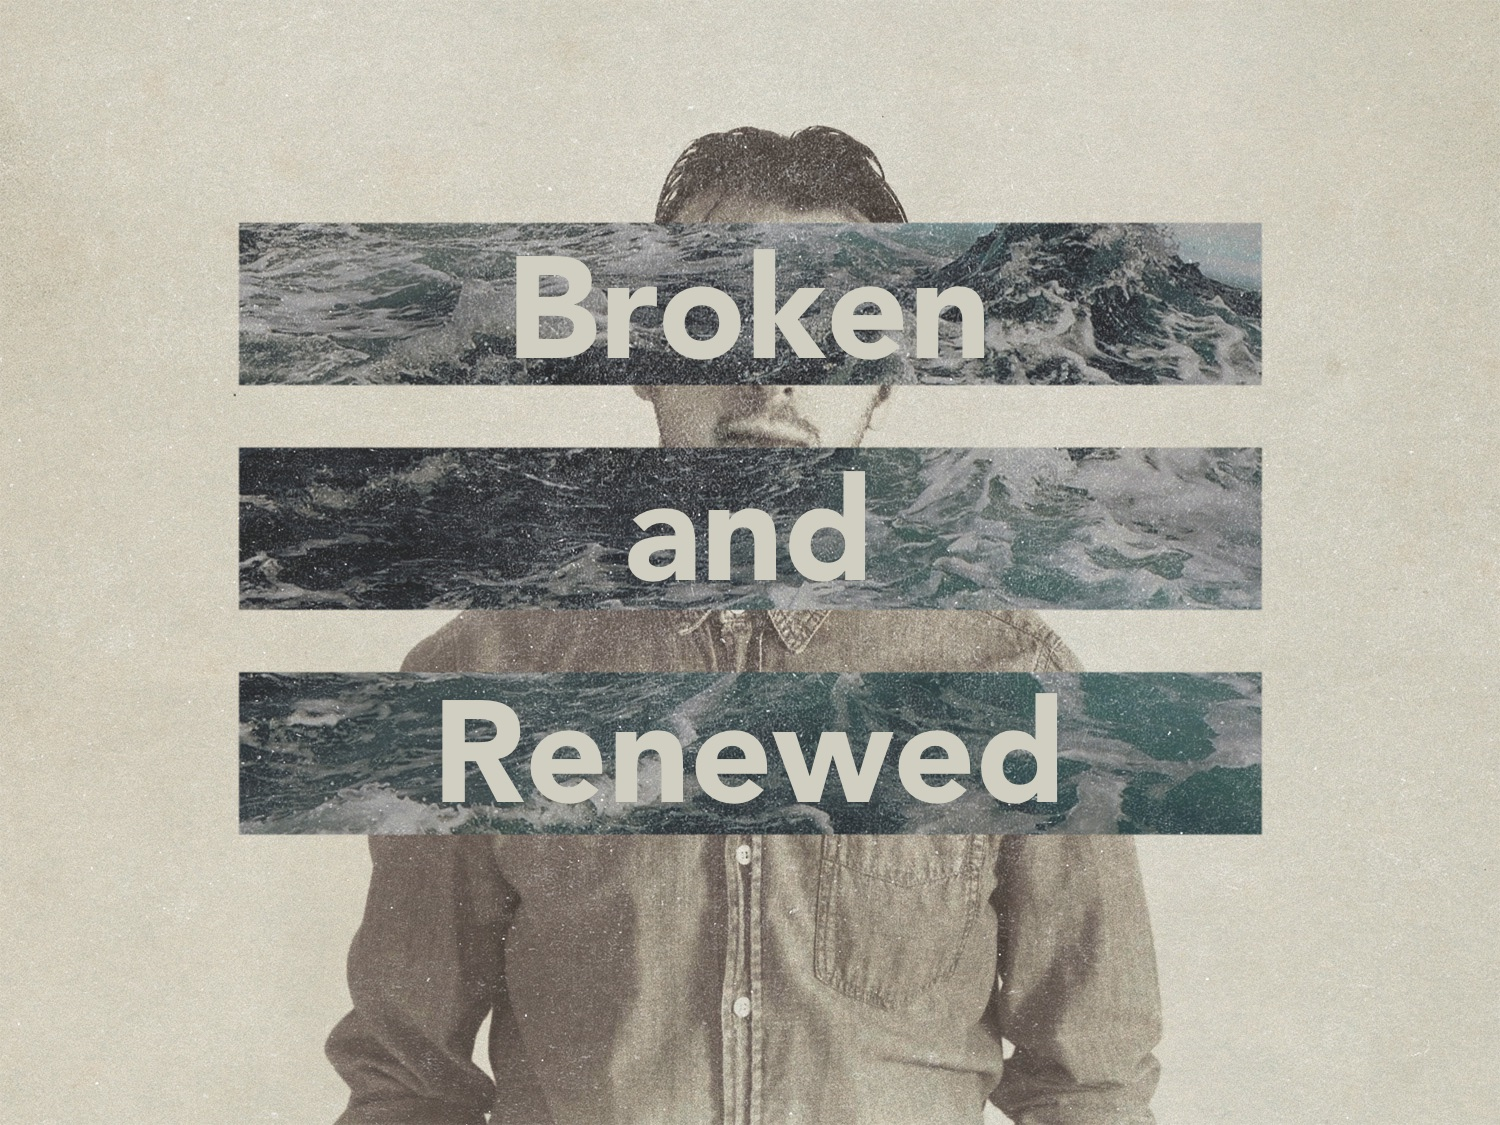 Broken and Renewed